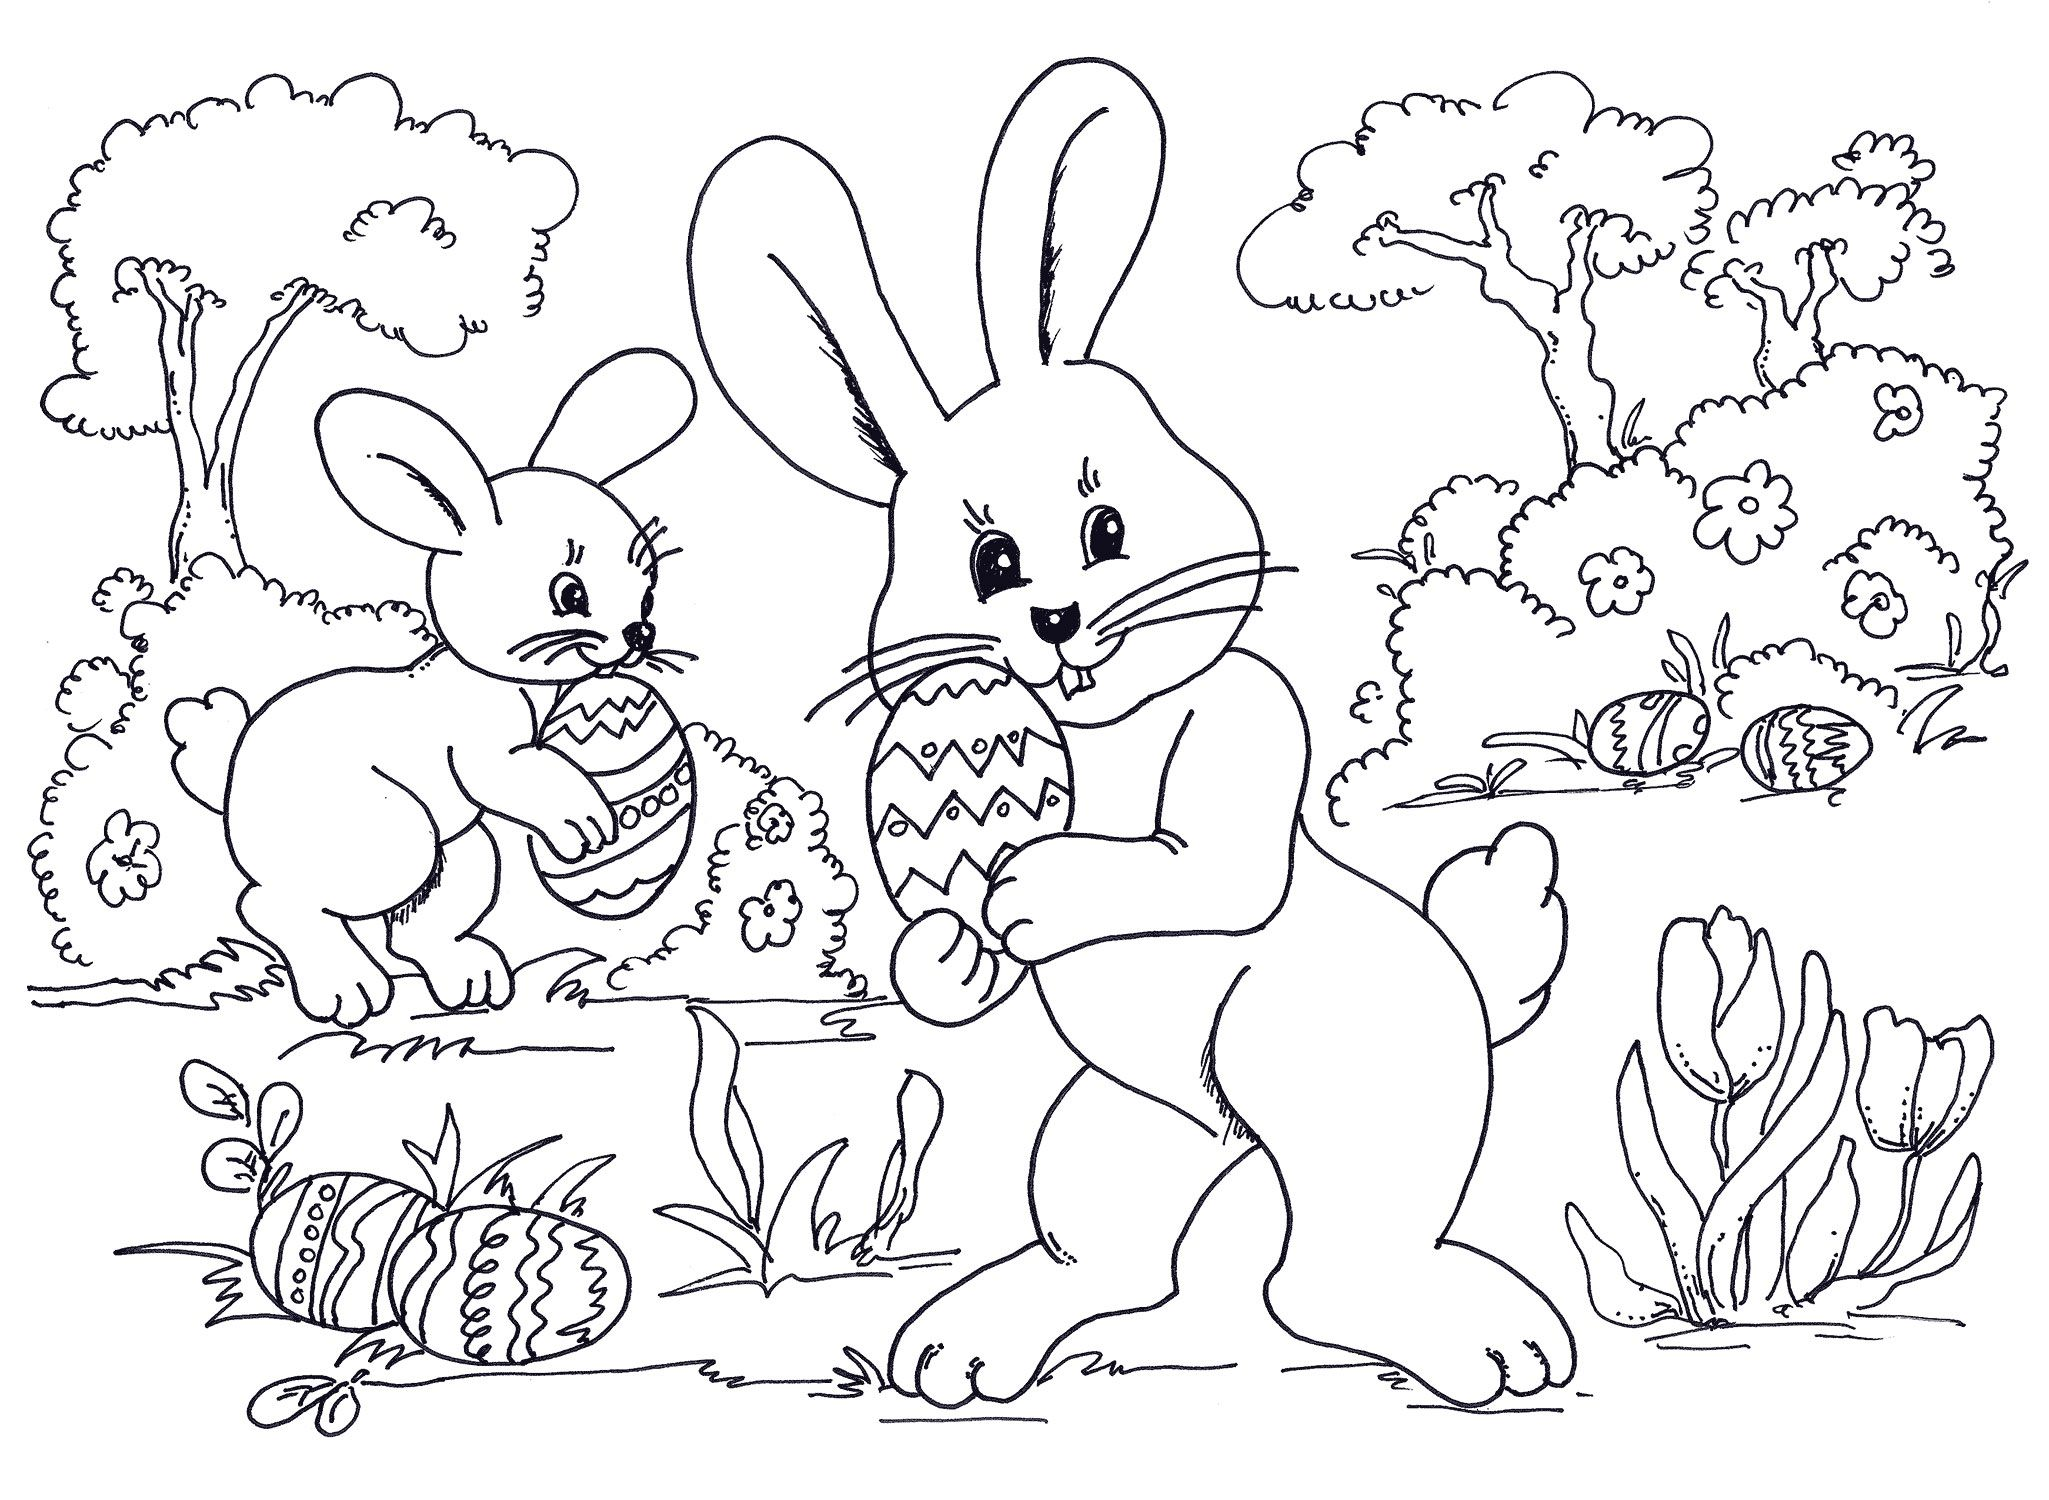 Happy Easter Day Colouring Printable Crafts | Easter Ideas | Pinterest